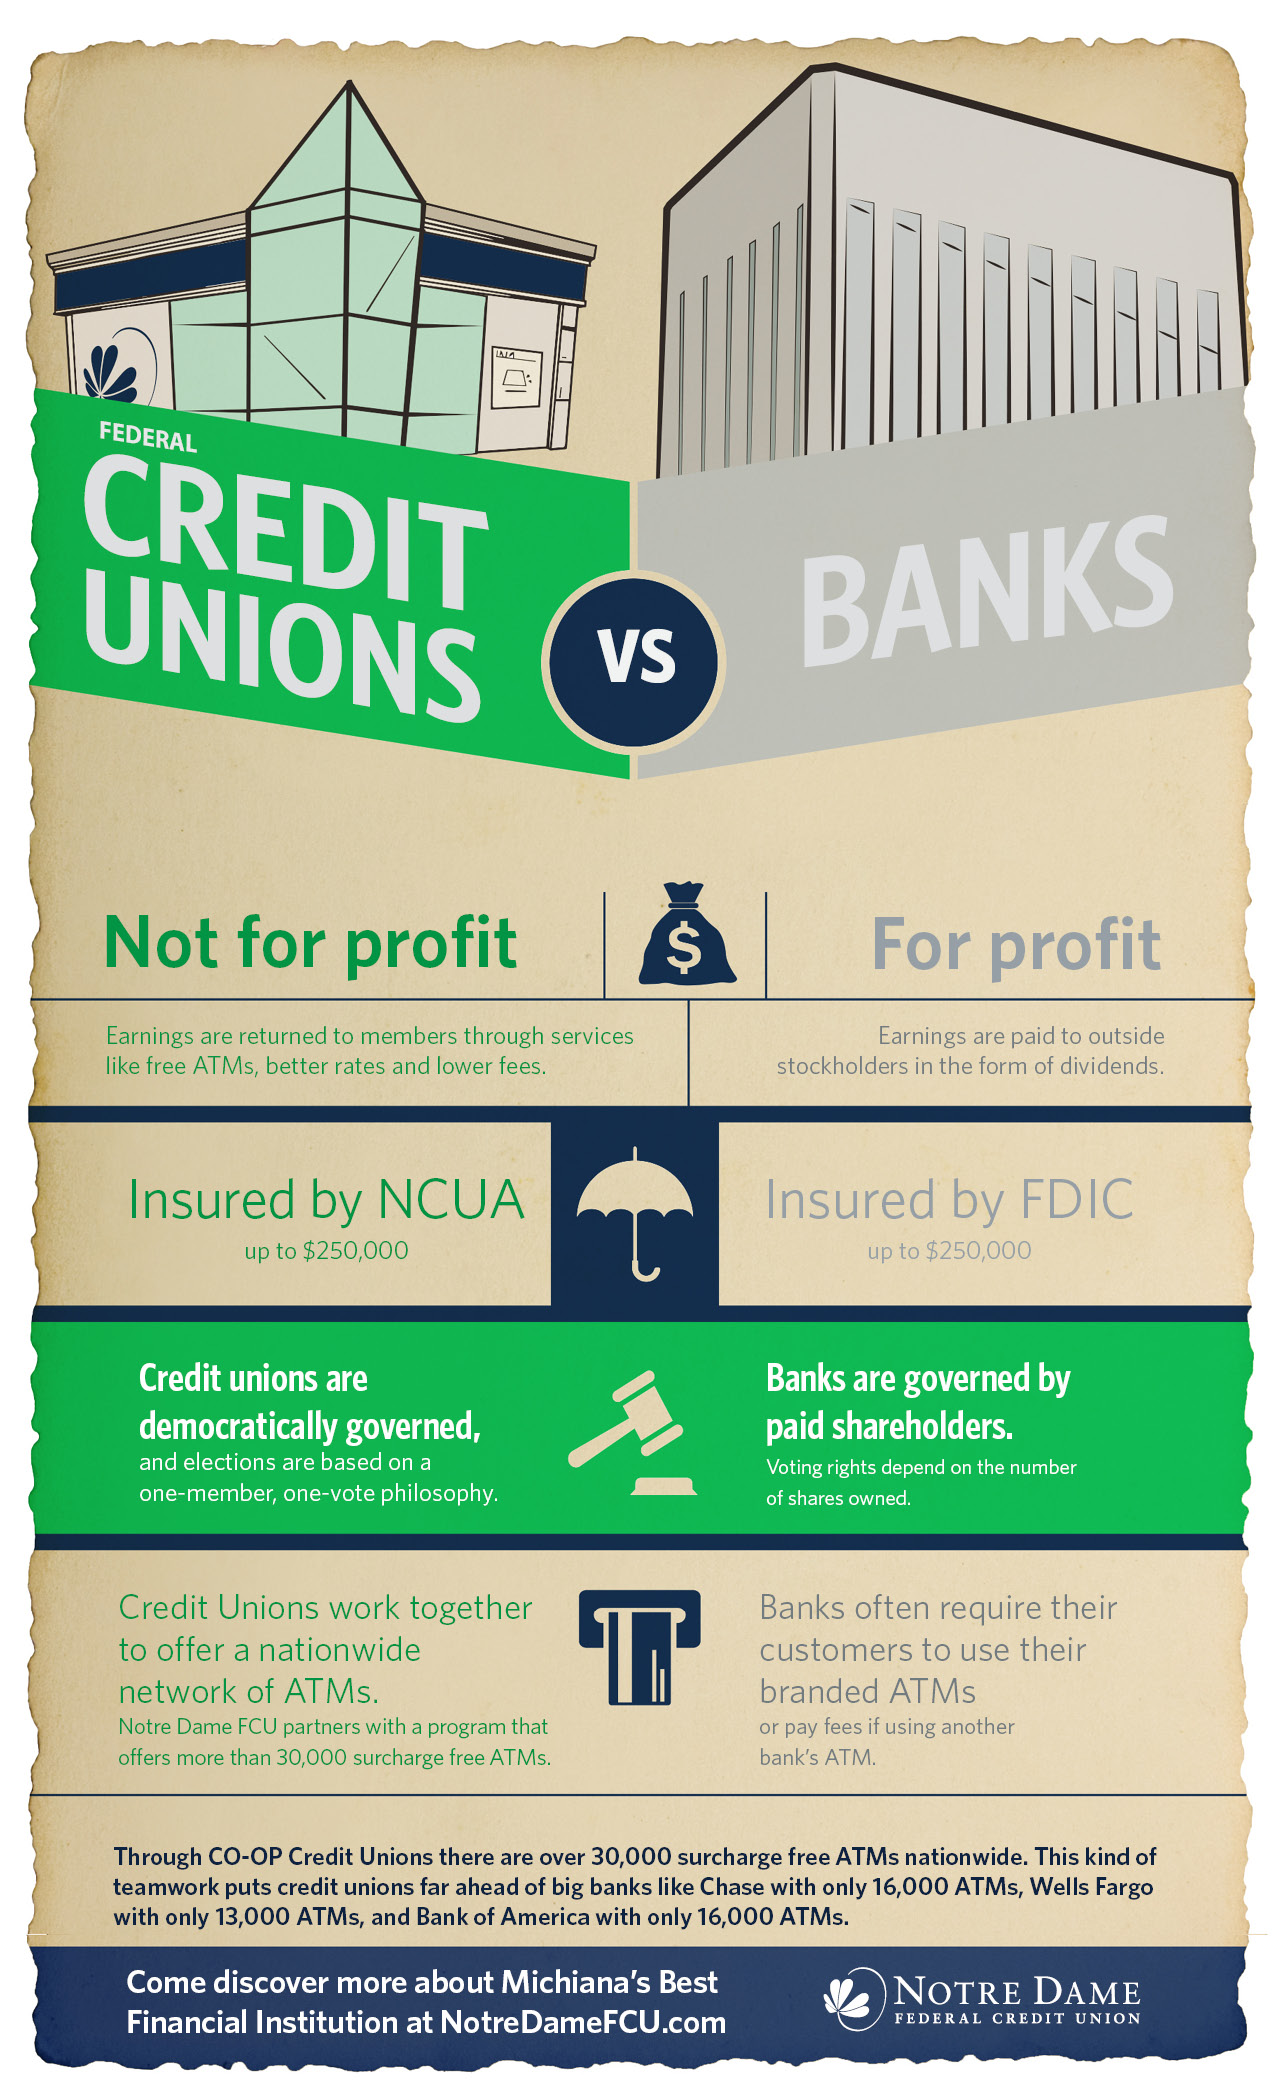 commercial banks and credit unions Current, comprehensive coverage of the banks & credit unions industry includes: industry forecasts, trends, financial information & detailed analysis updated 4/9/2018.